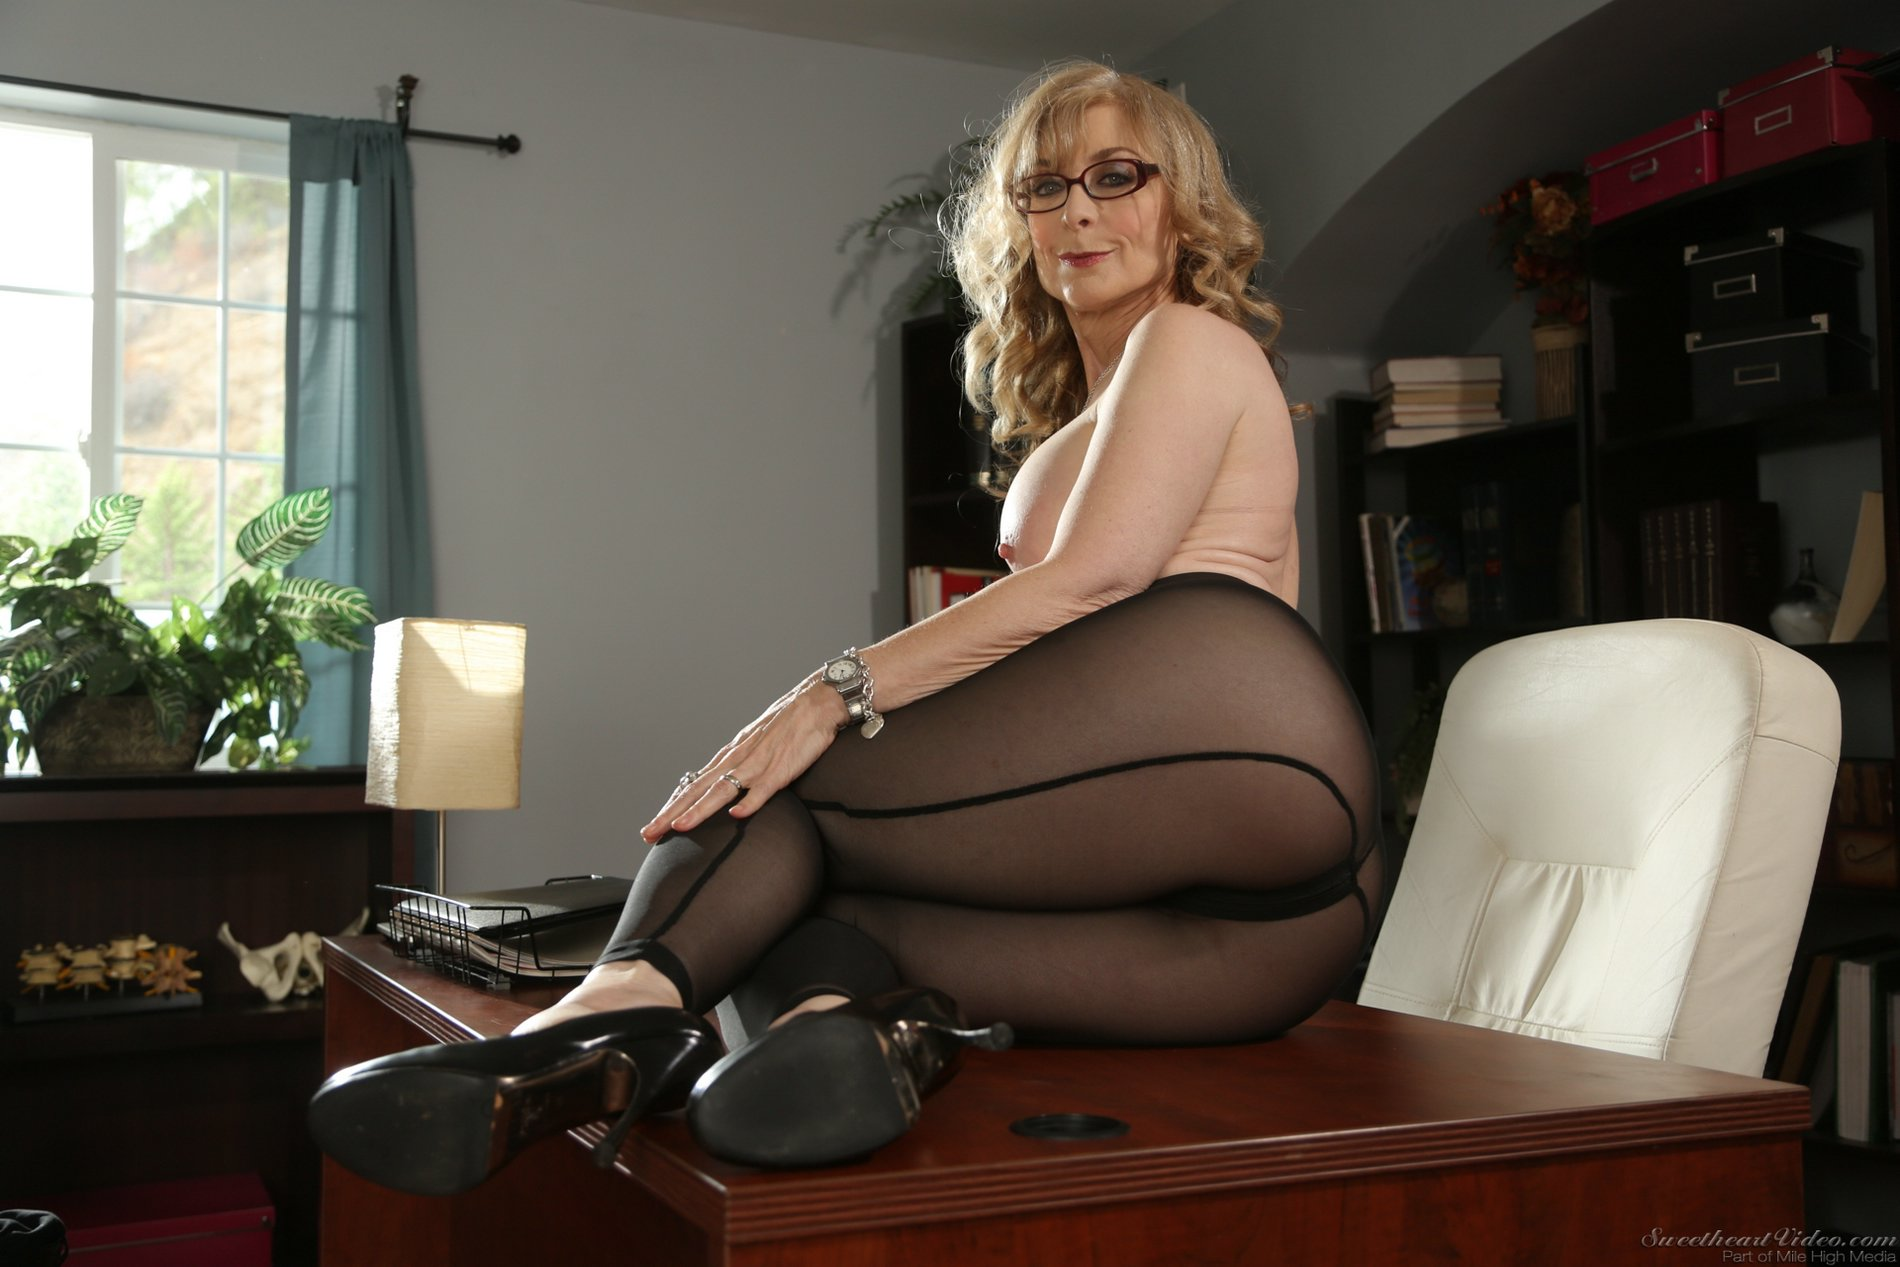 Nina Hartley in black pantyhose and heels posing in the office.